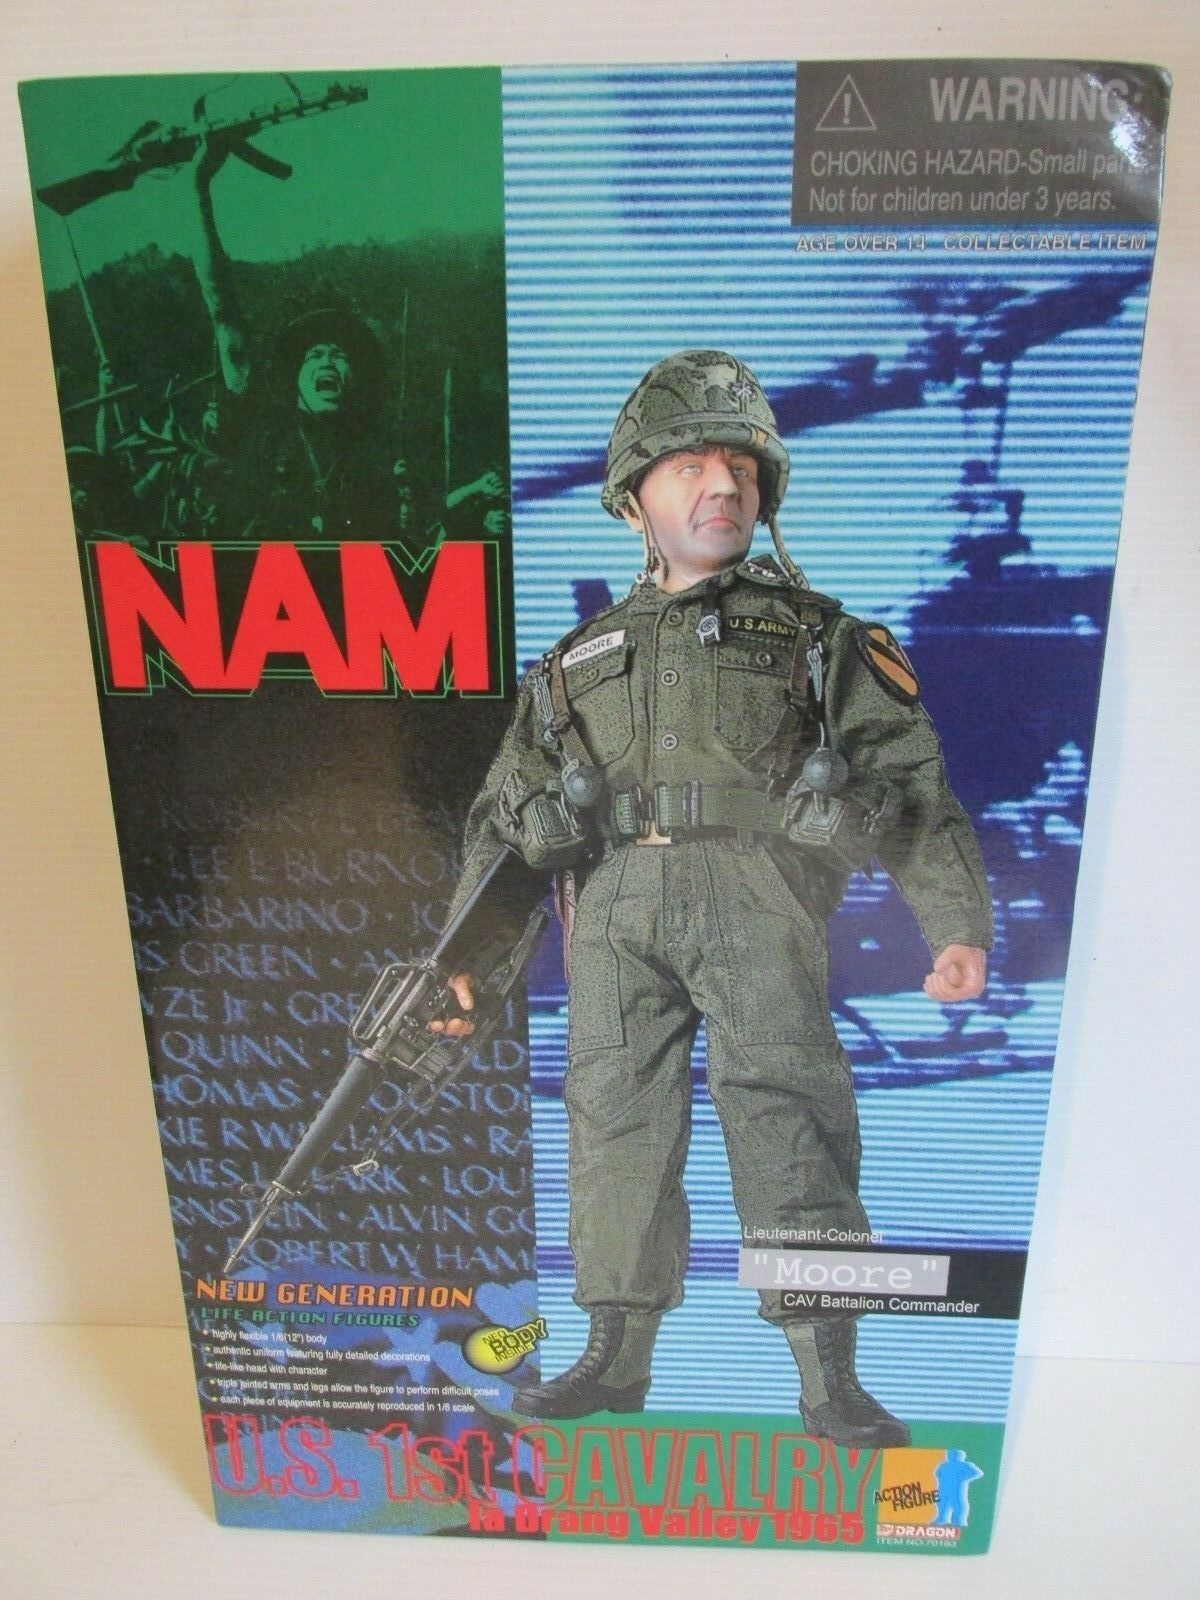 Dragon Side show 1 6TH scale figures NAM U.S 1ST CAVALRY  MOORE